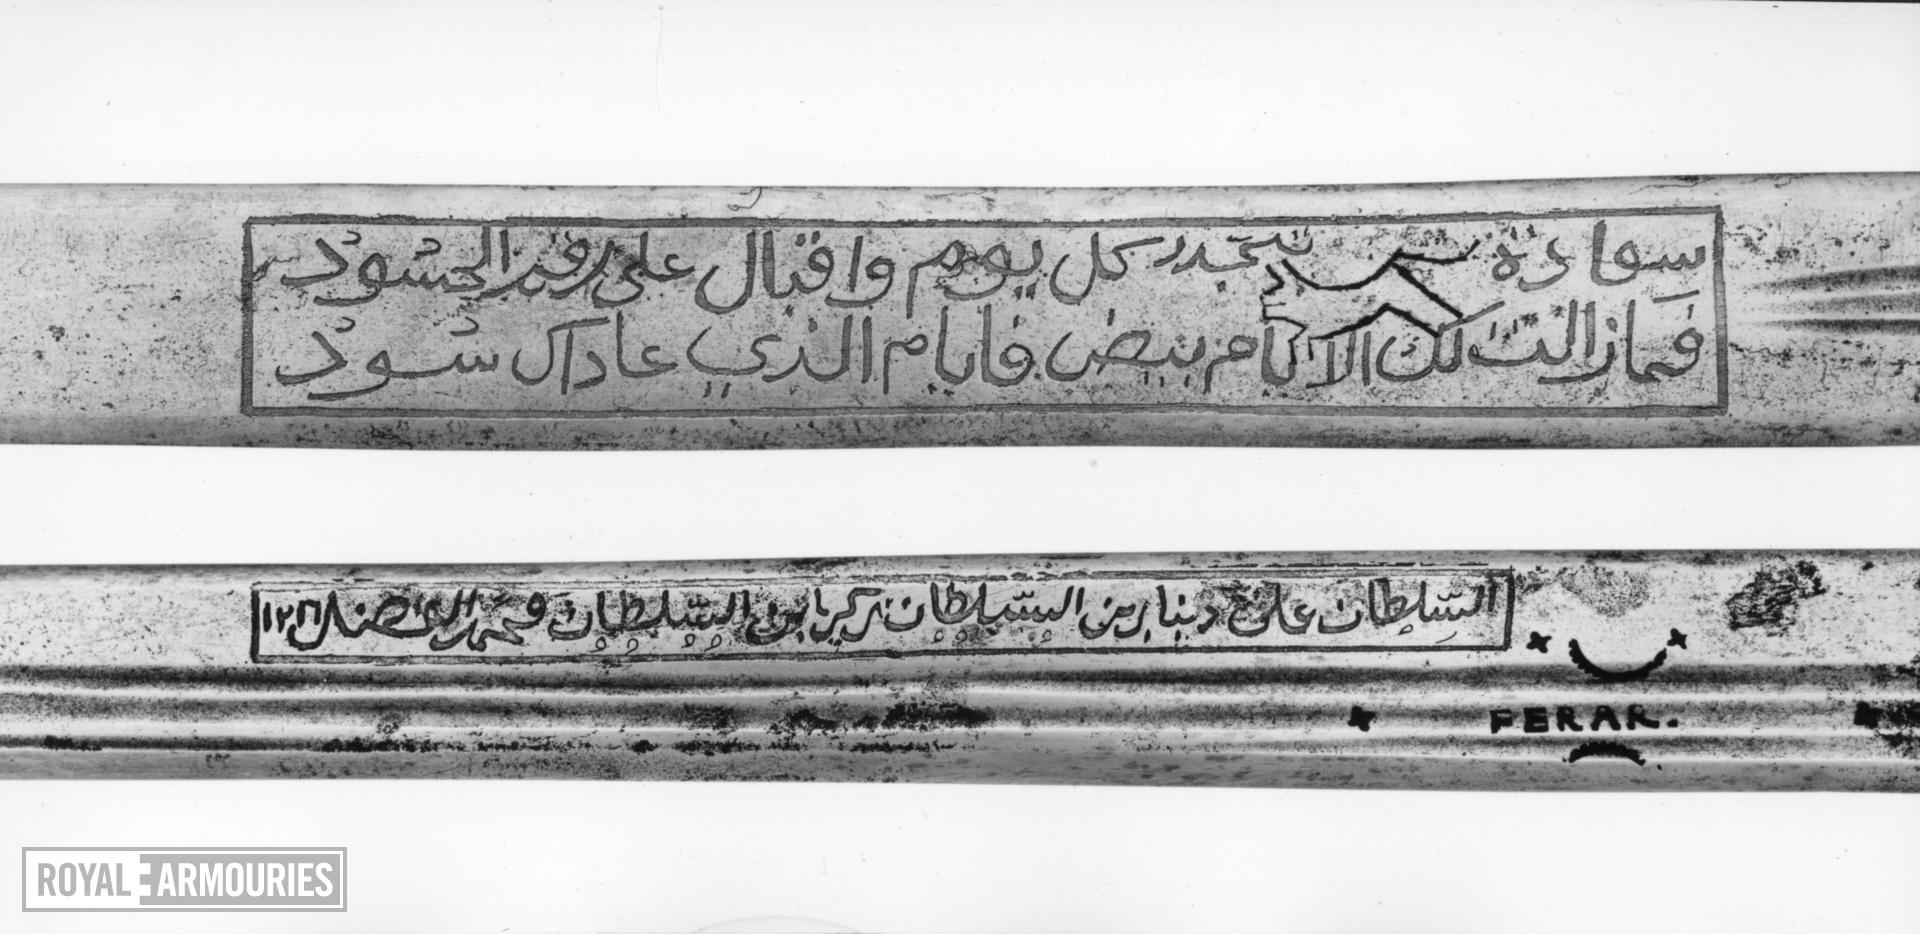 Sword (kaskara) Of sultan `Ali Dinar of Darfur, with scabbard